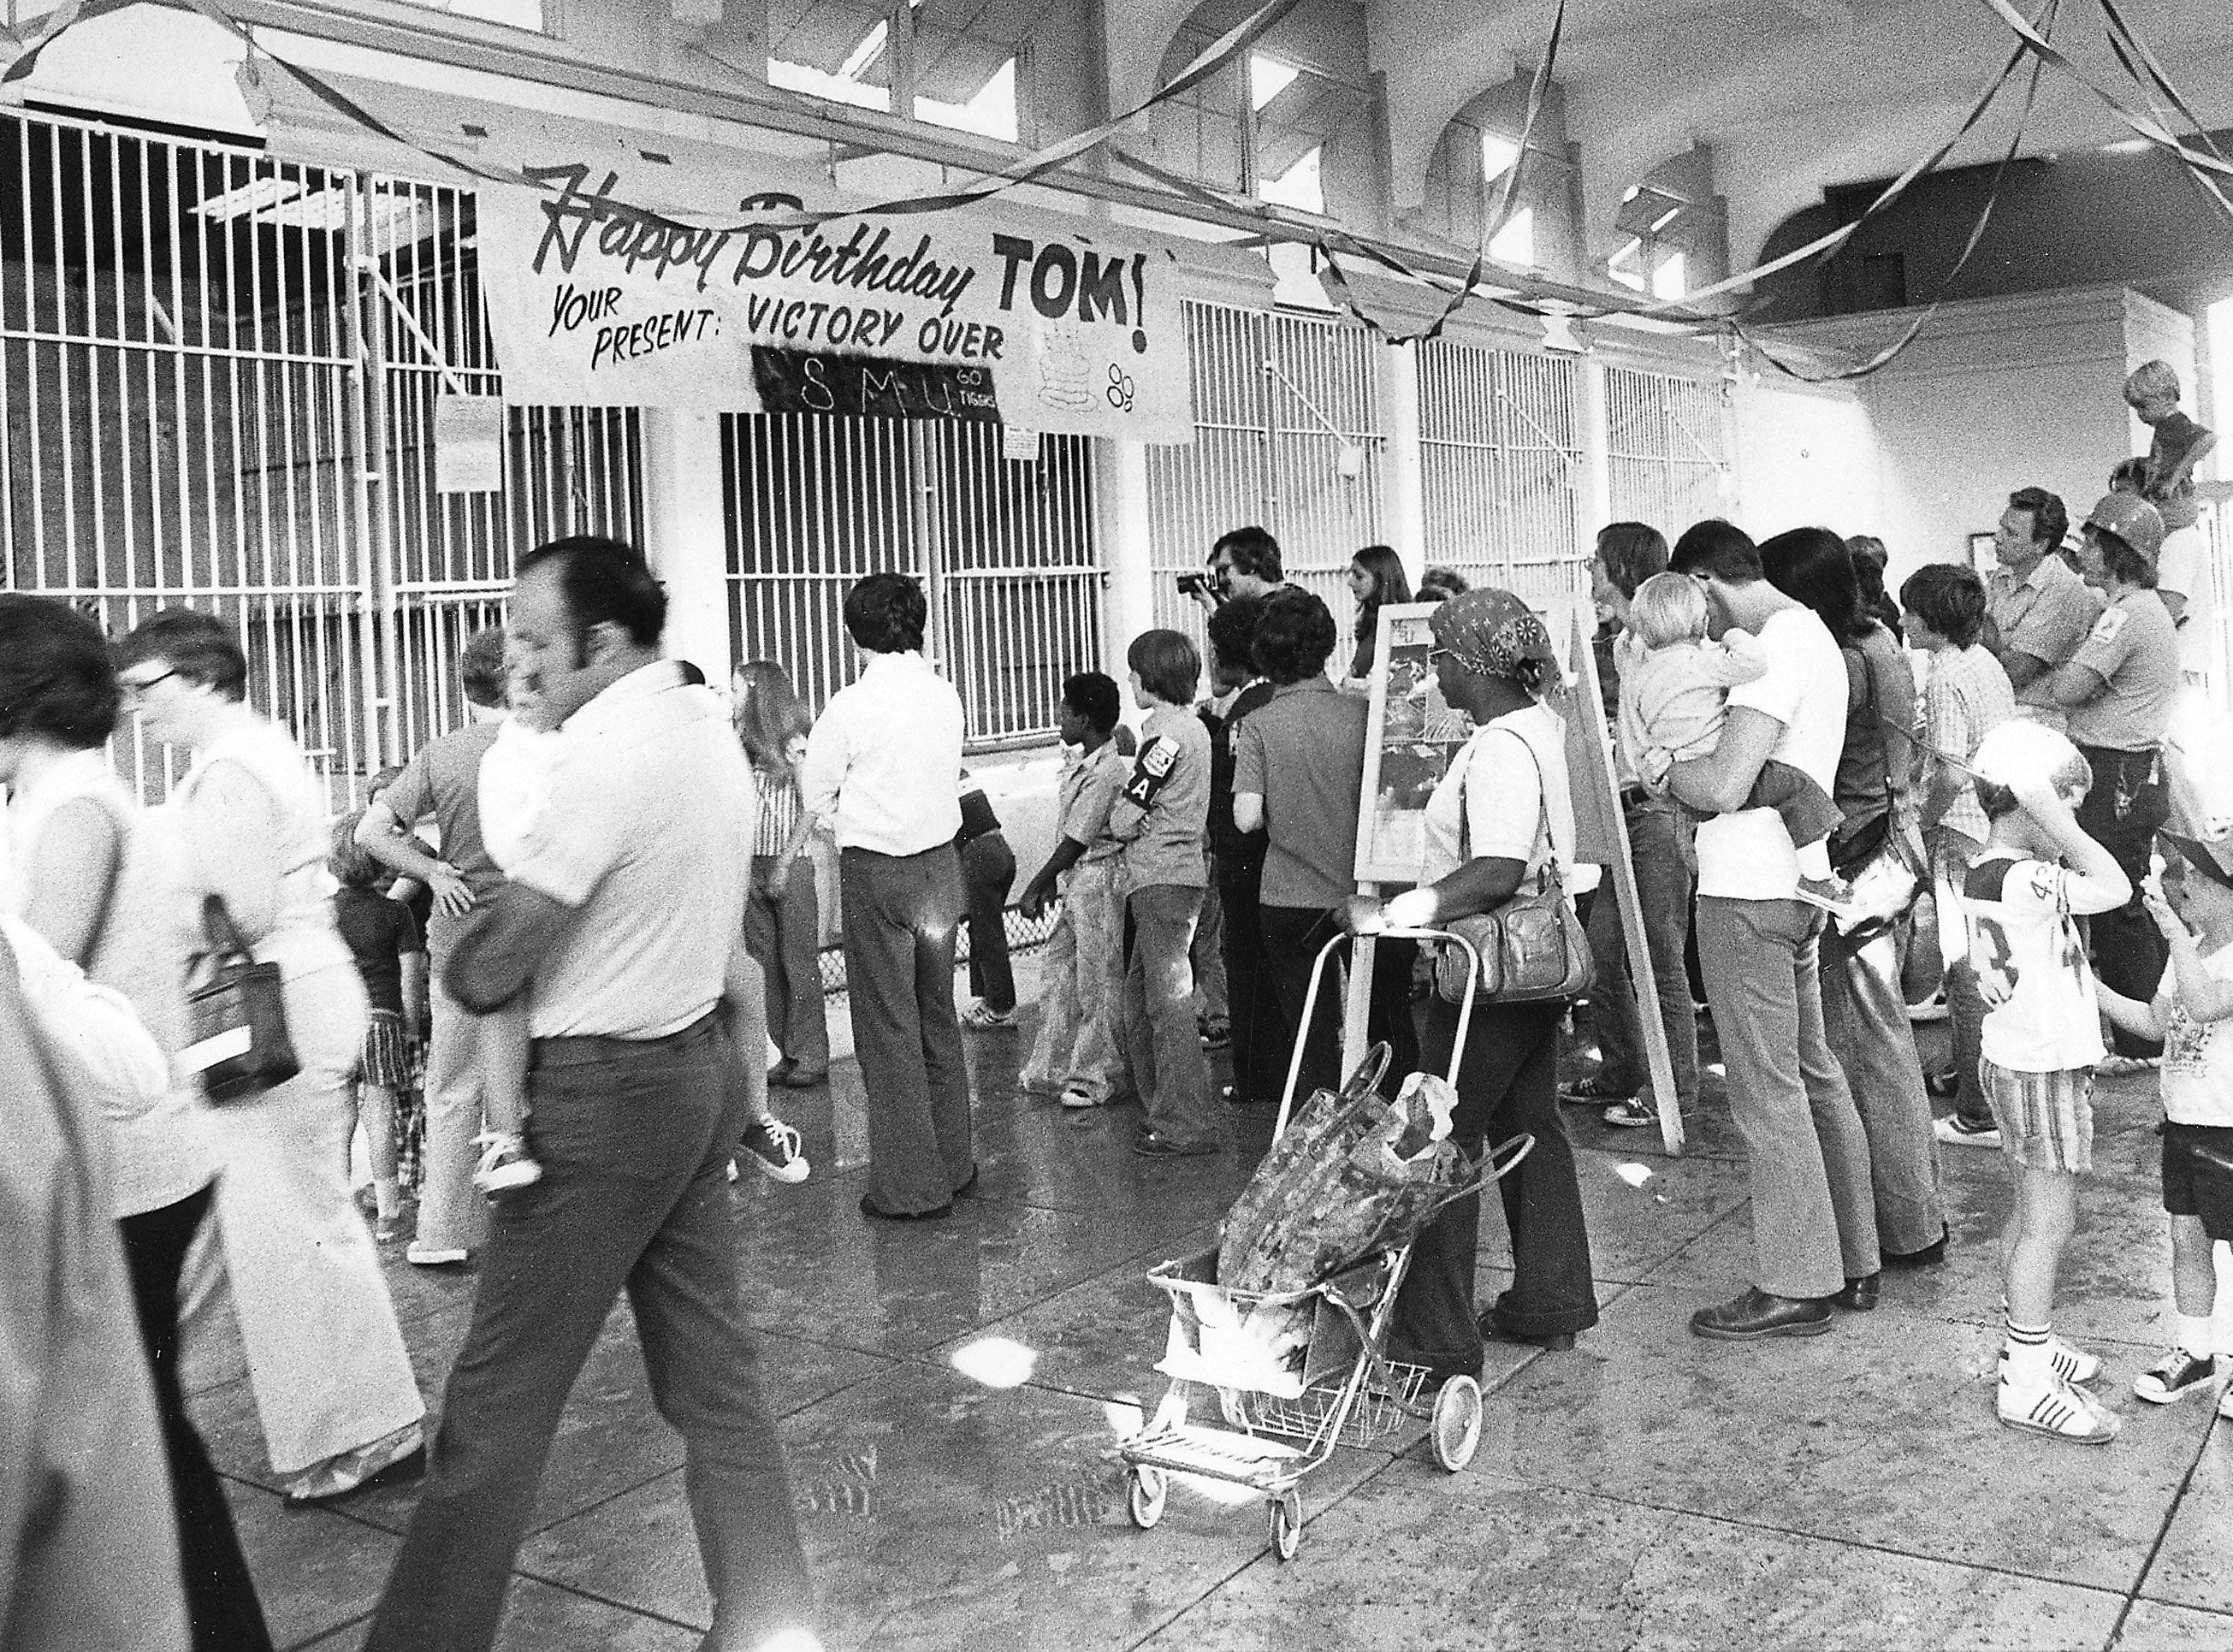 """Memphis State University fans turn out at the Memphis Zoo to wish Tiger mascot """"TOM"""" a happy fourth birthday on Sept. 25, 1976. The party included a cake, candles, a 16-foot card, three gift footballs and about 150 well-wishers. The party was arranged primarily by TOM's keeper Louie Bell and Cecil Sowell, vice president of the Highland Hundred booster club."""